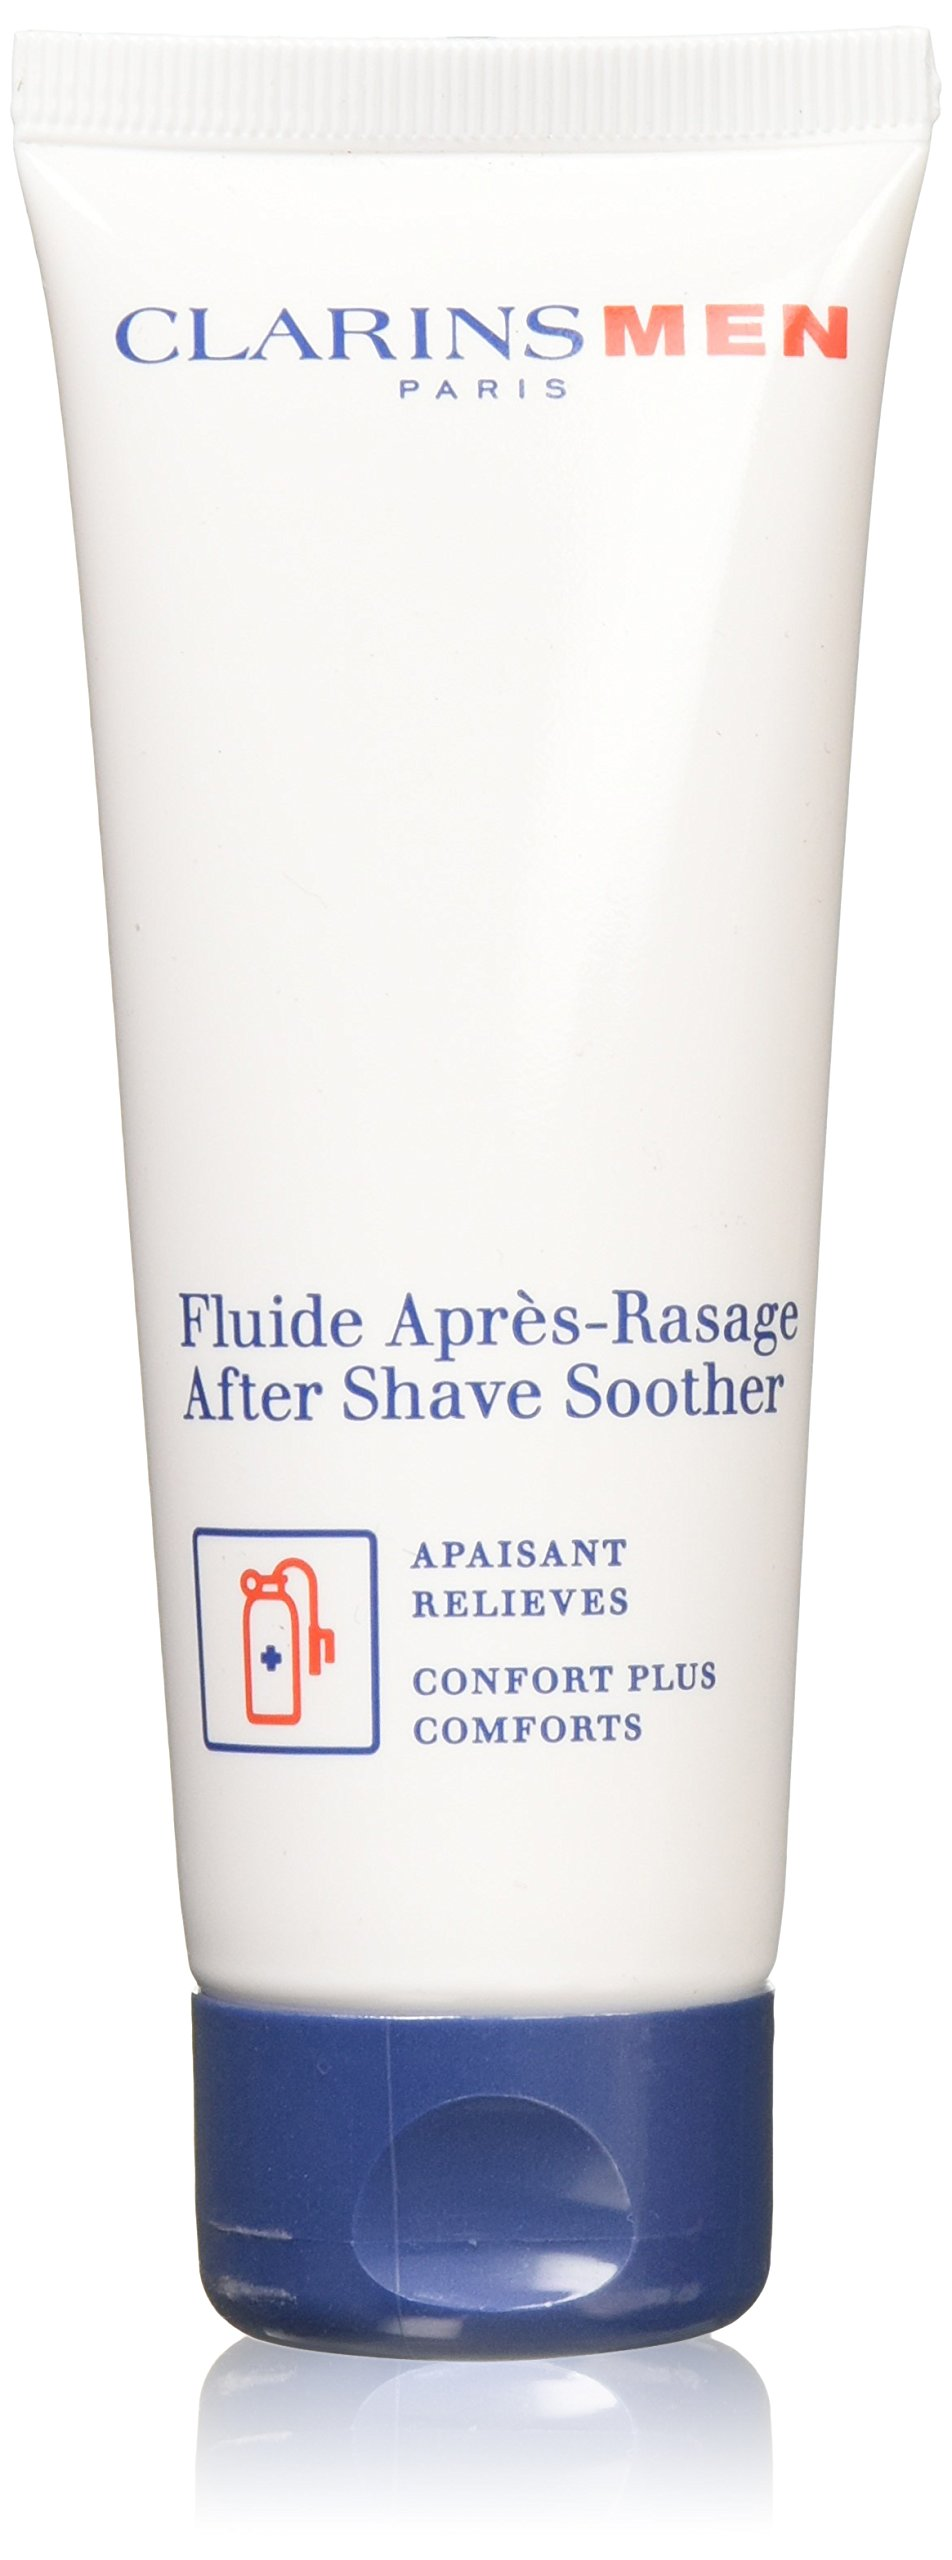 Clarins Men After Shave Soother, 2.7 Ounce